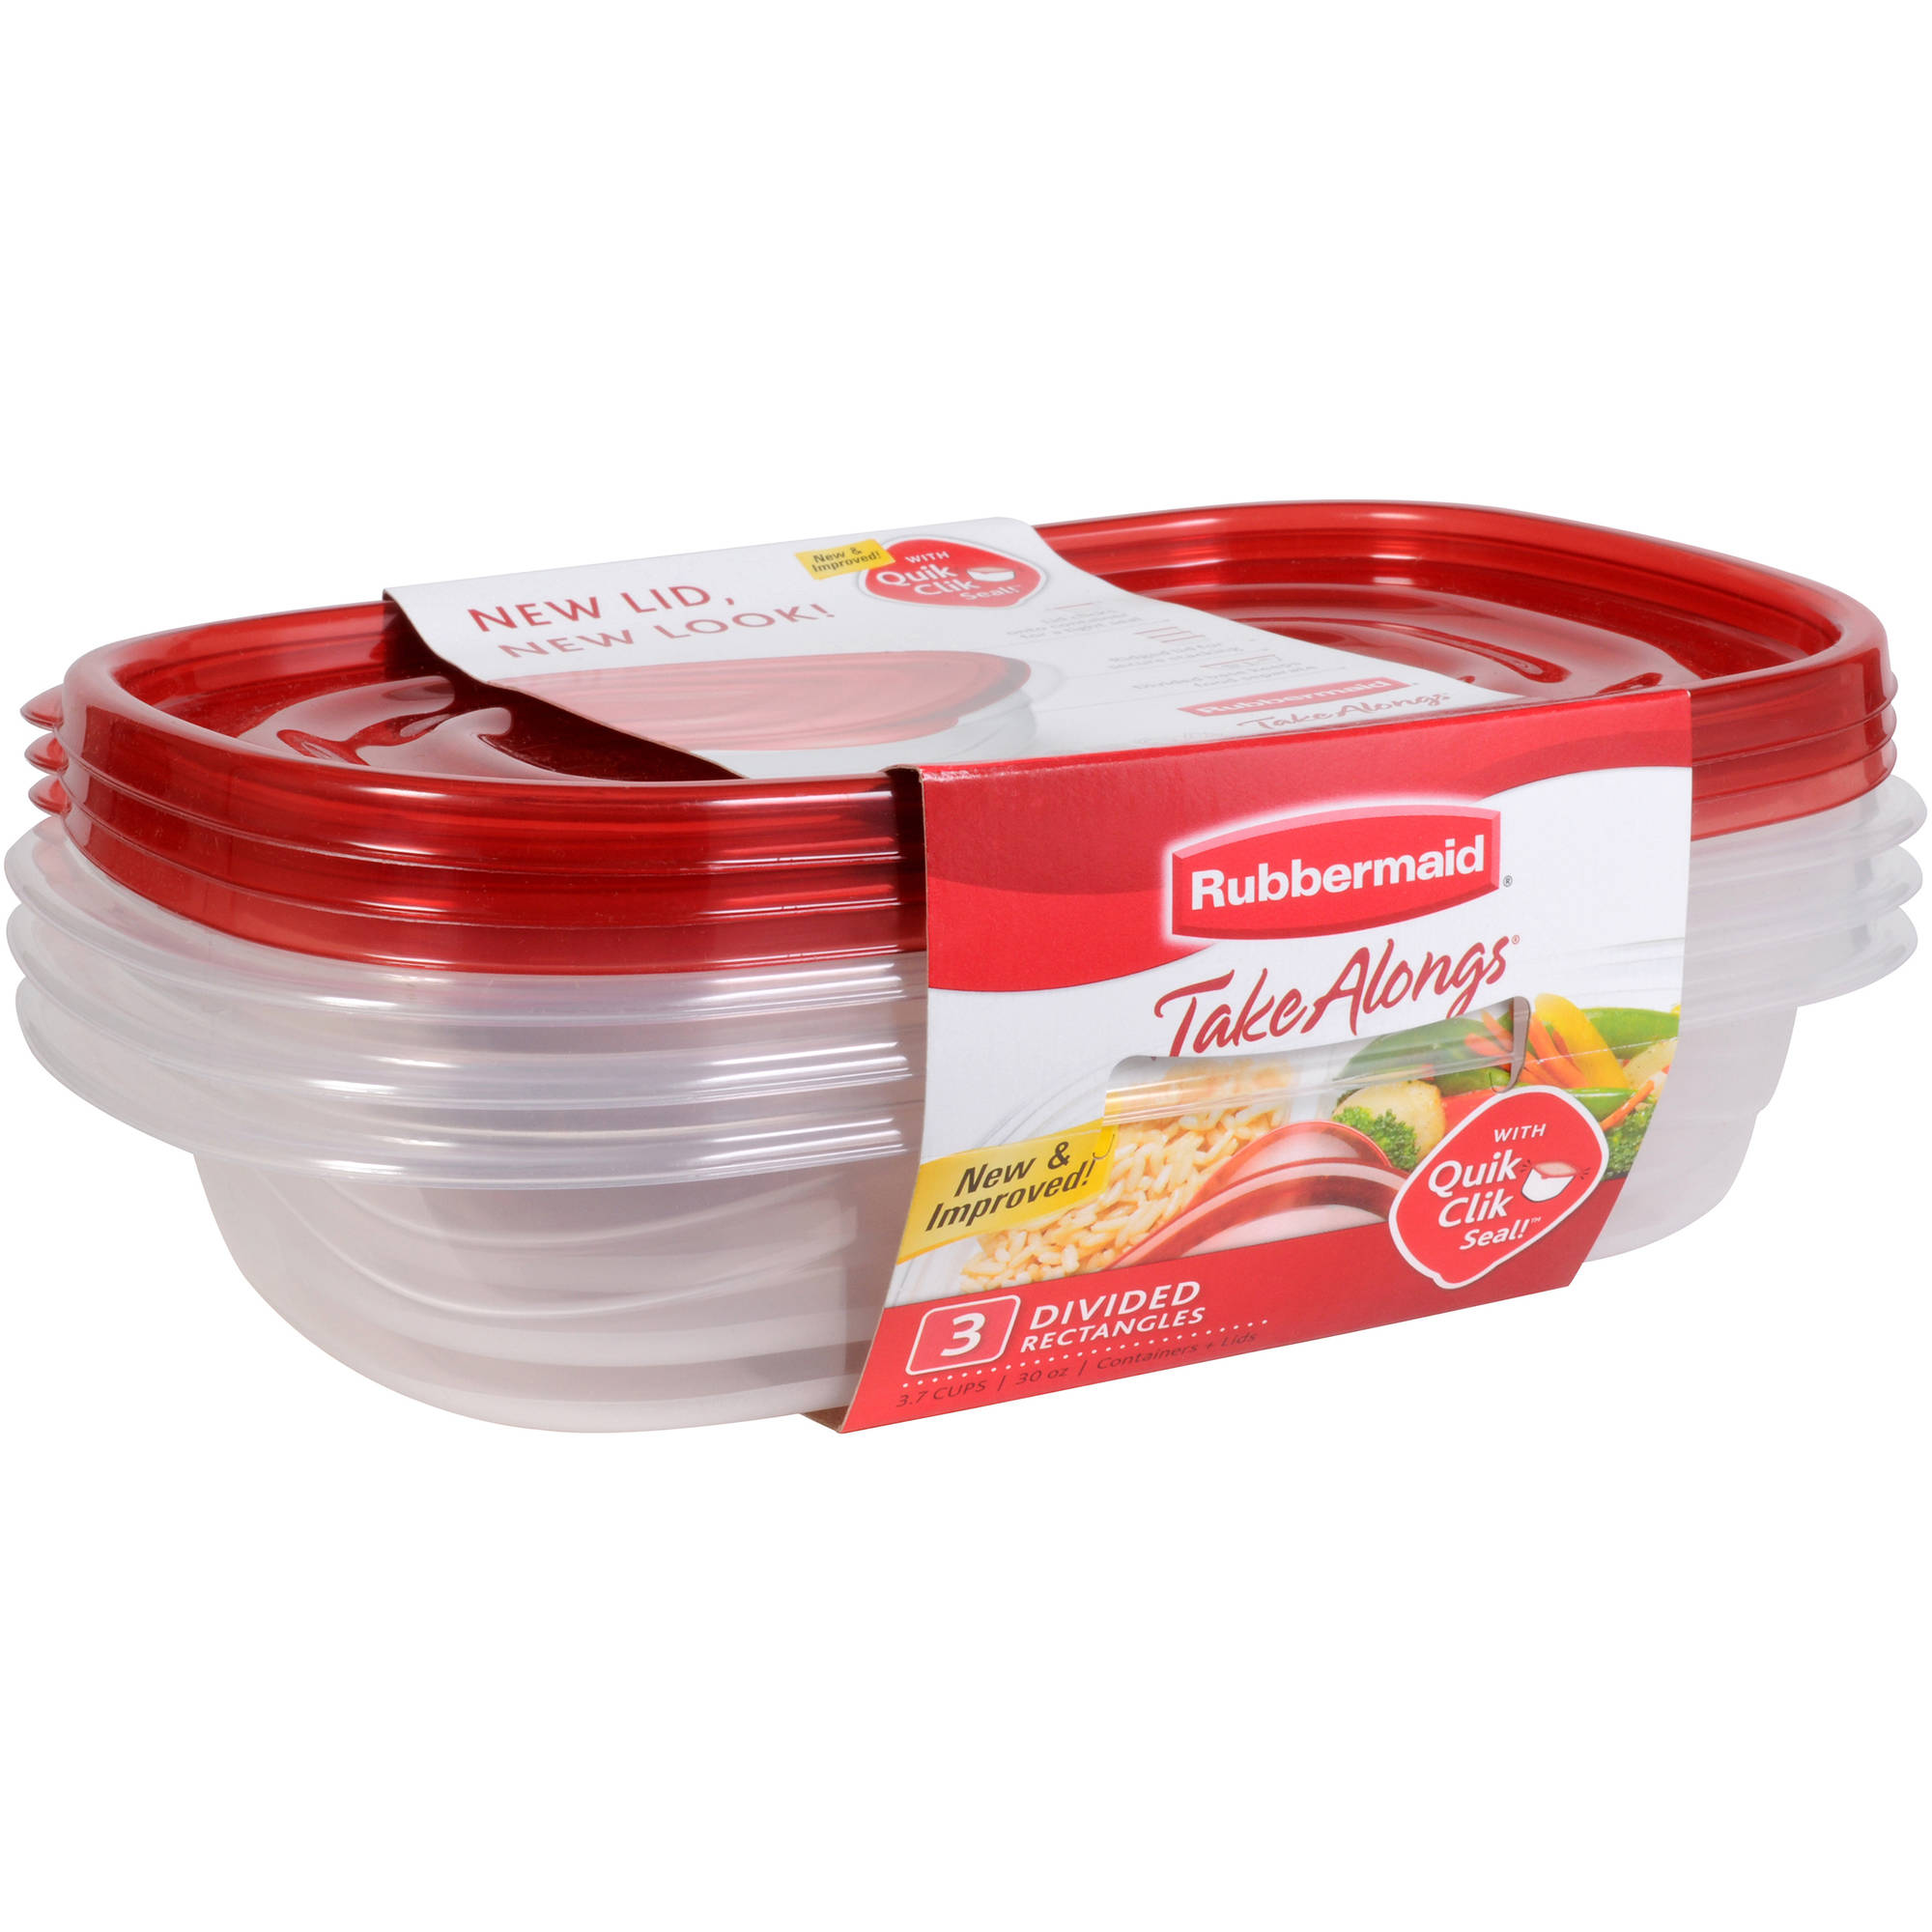 Rubbermaid TakeAlongs Divided Rectangle Containers, 3 count